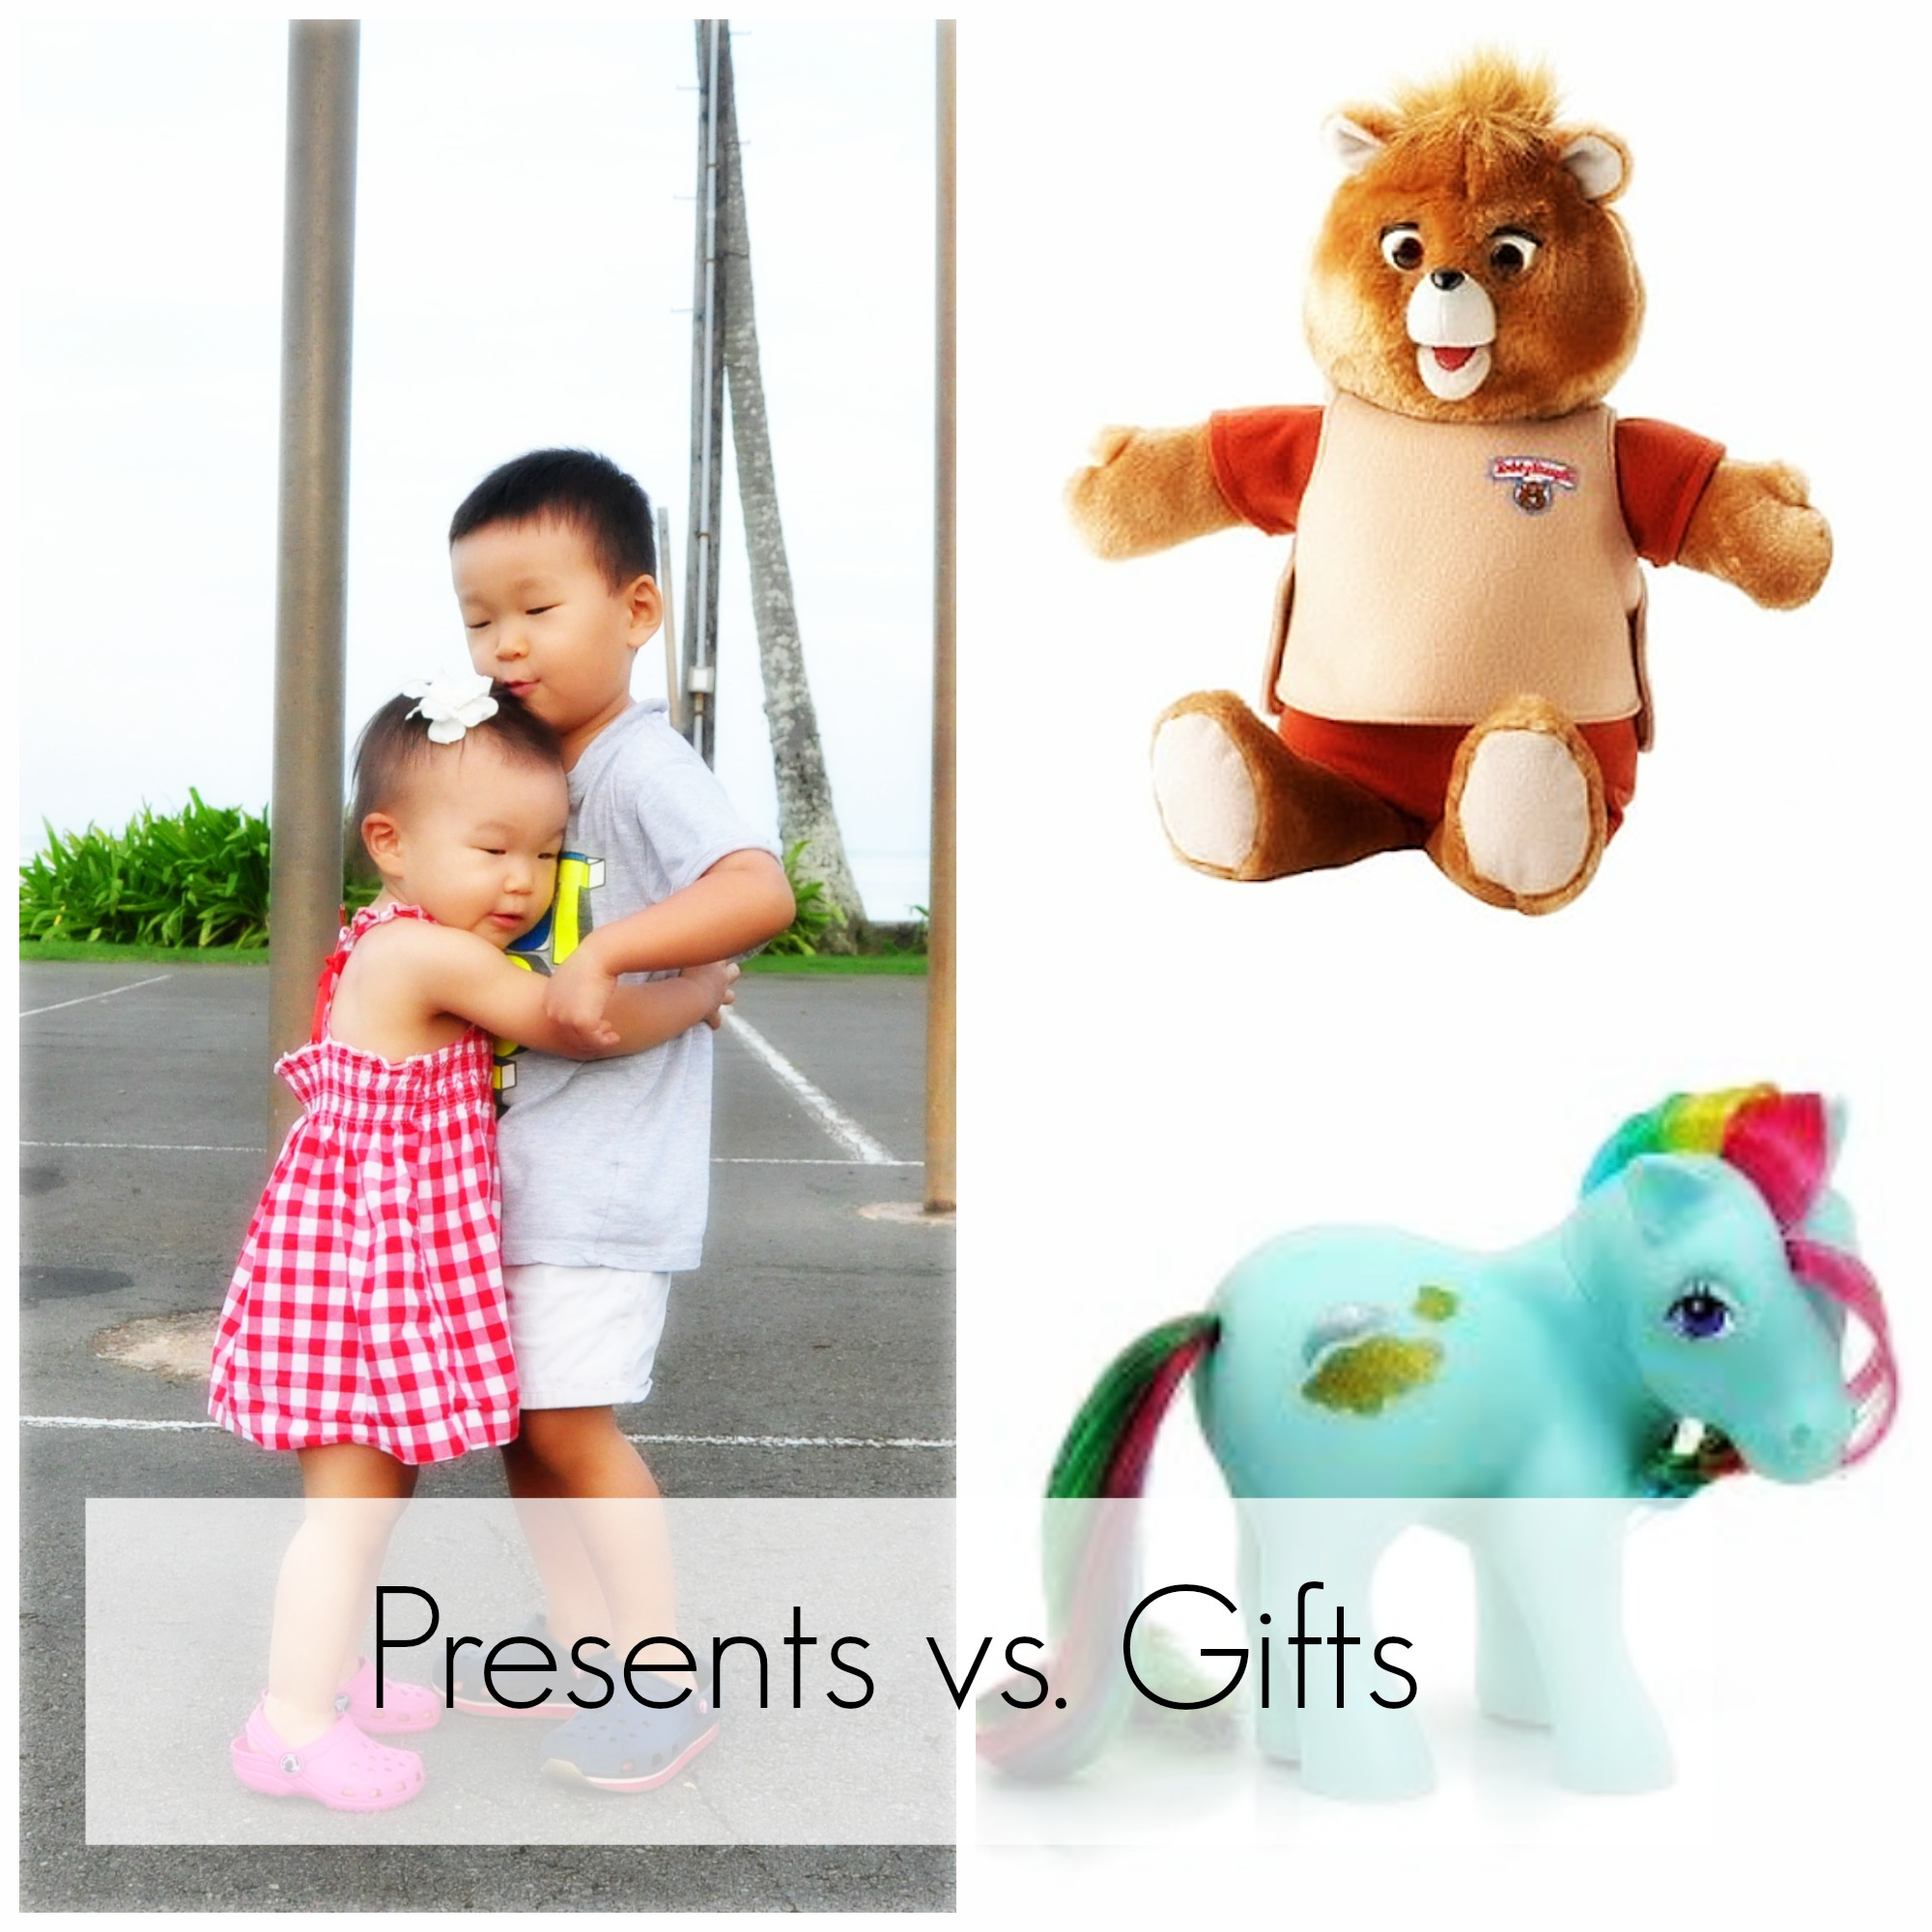 presents vs gifts final.jpg